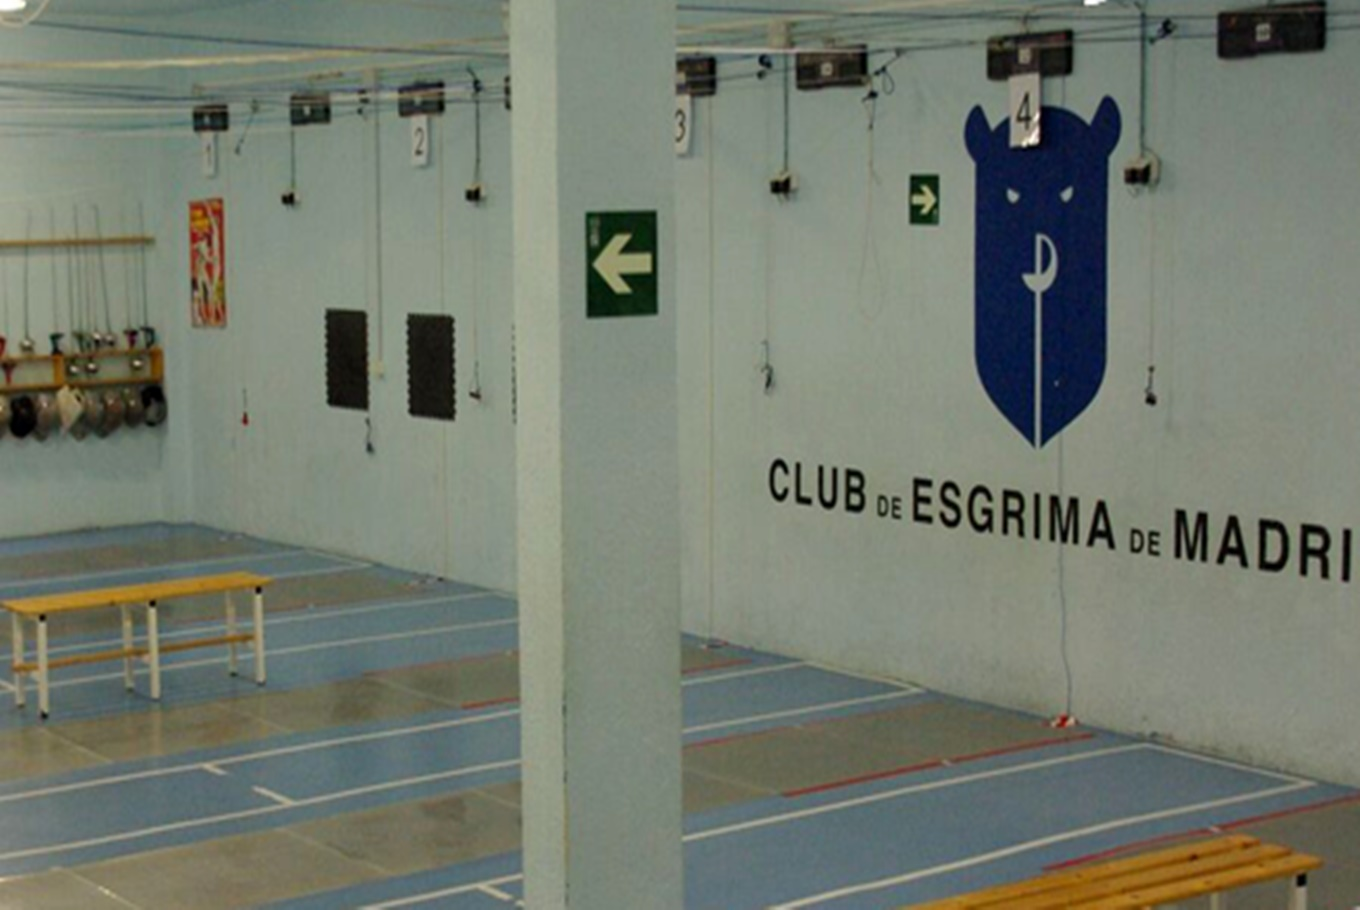 Club de Esgrima de Madrid